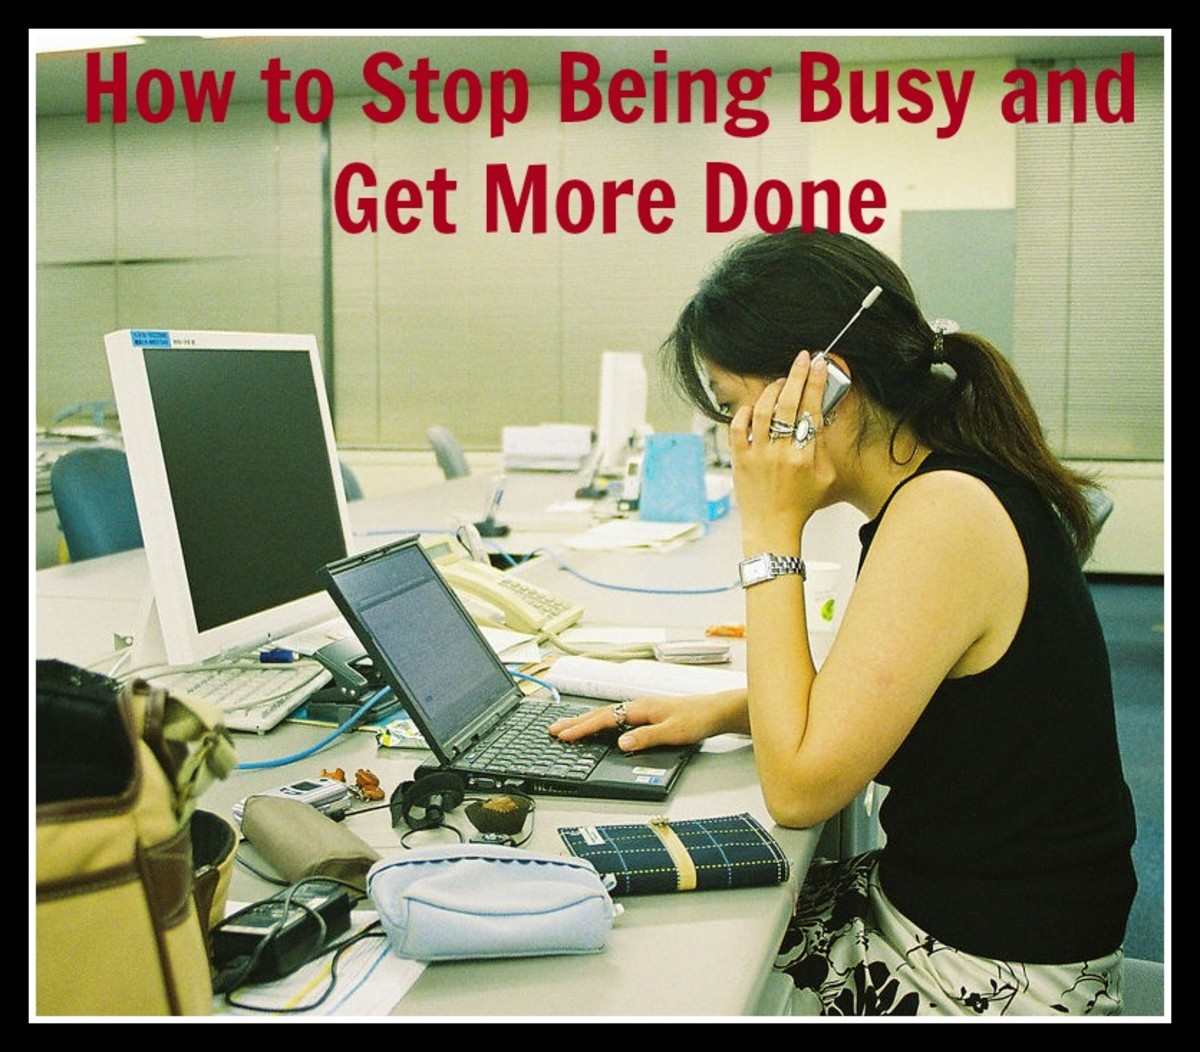 Get Ahead by Doing Less: Being Busy Hurts Your Creativity and Makes You Less Effective